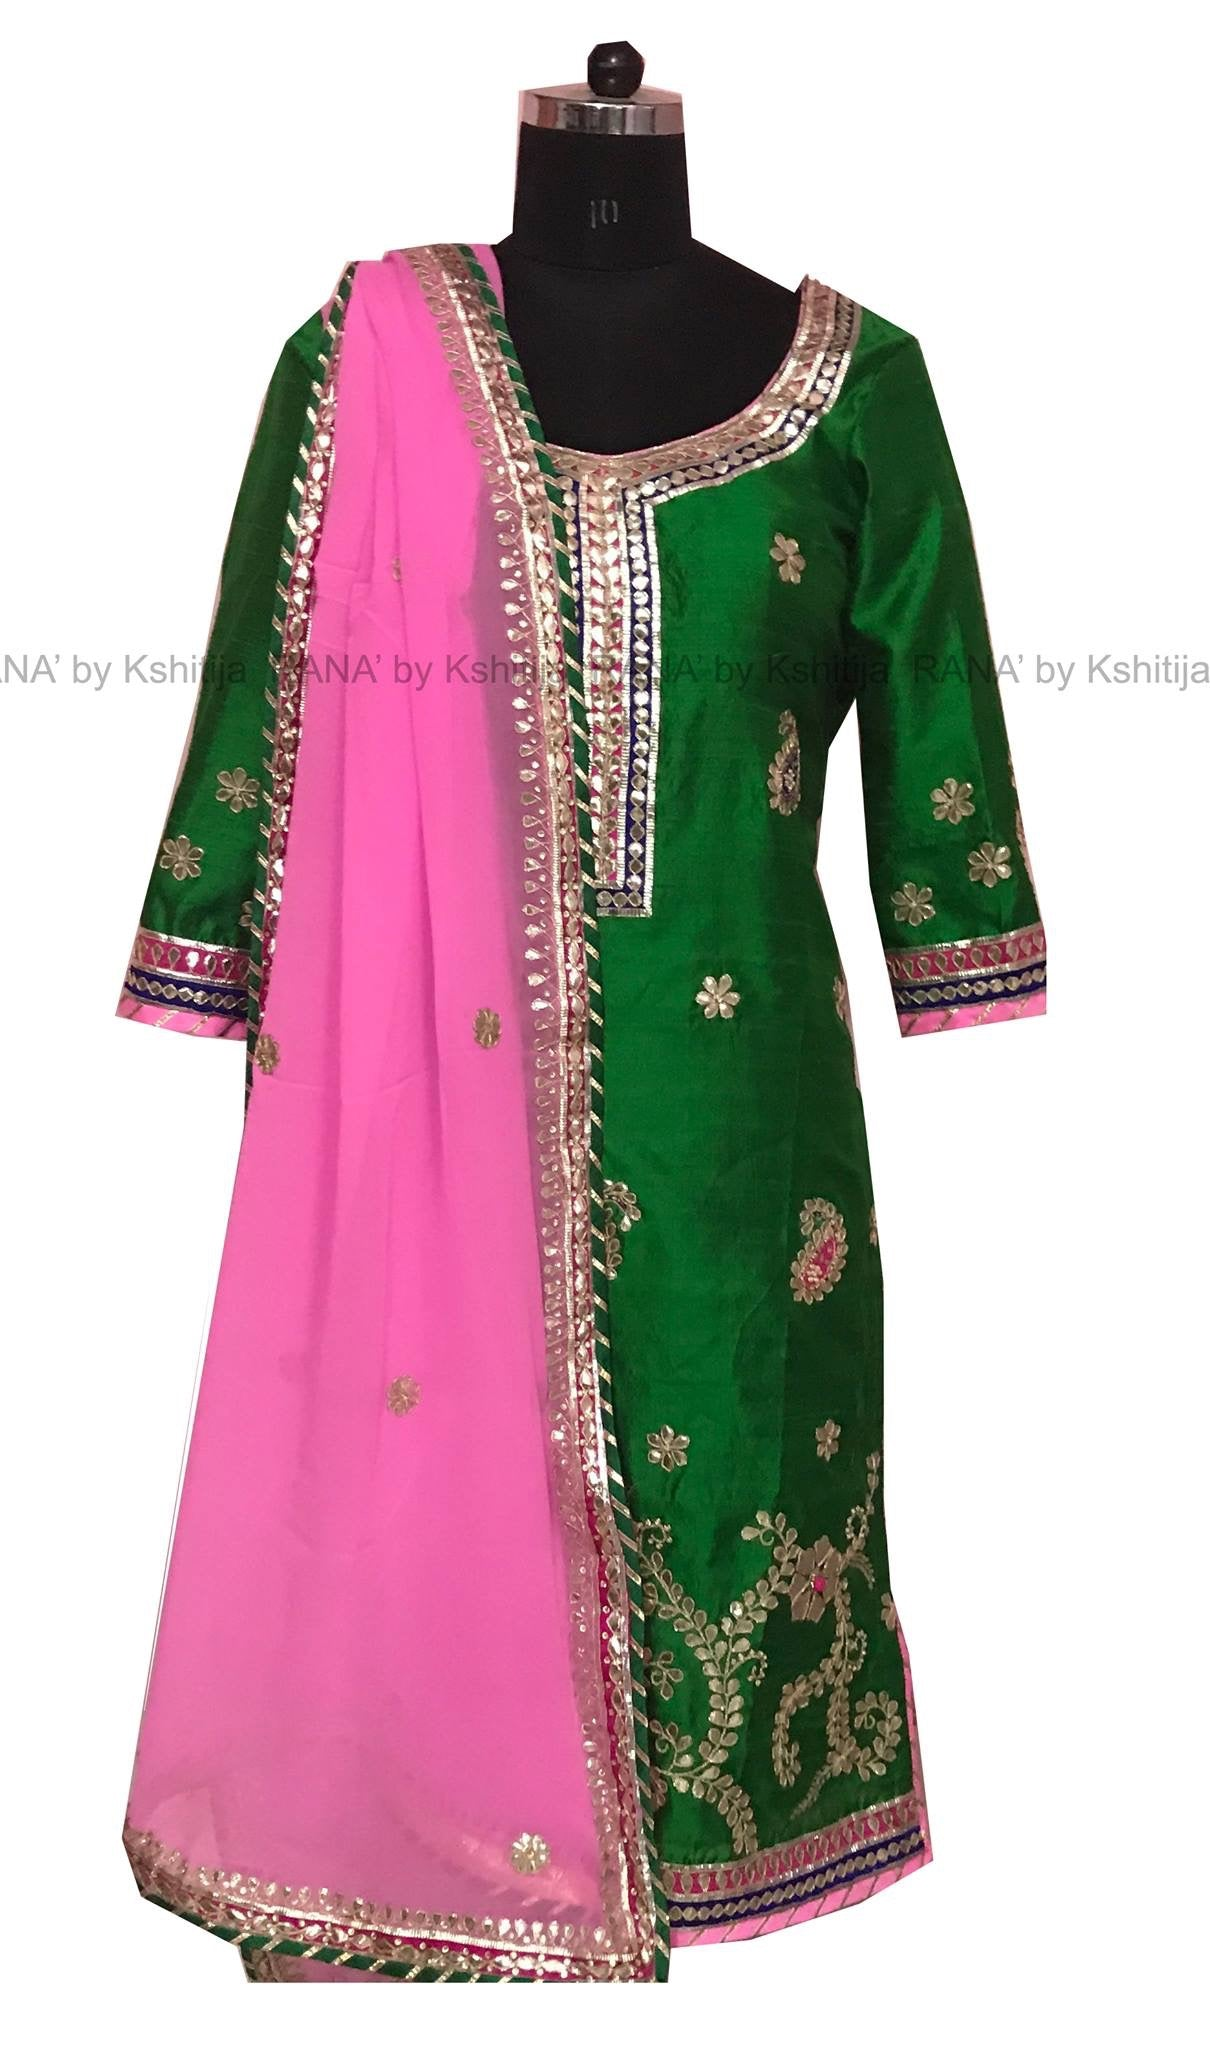 ranas-by-kshitija-pretty-pink-and-green-salwar-suit